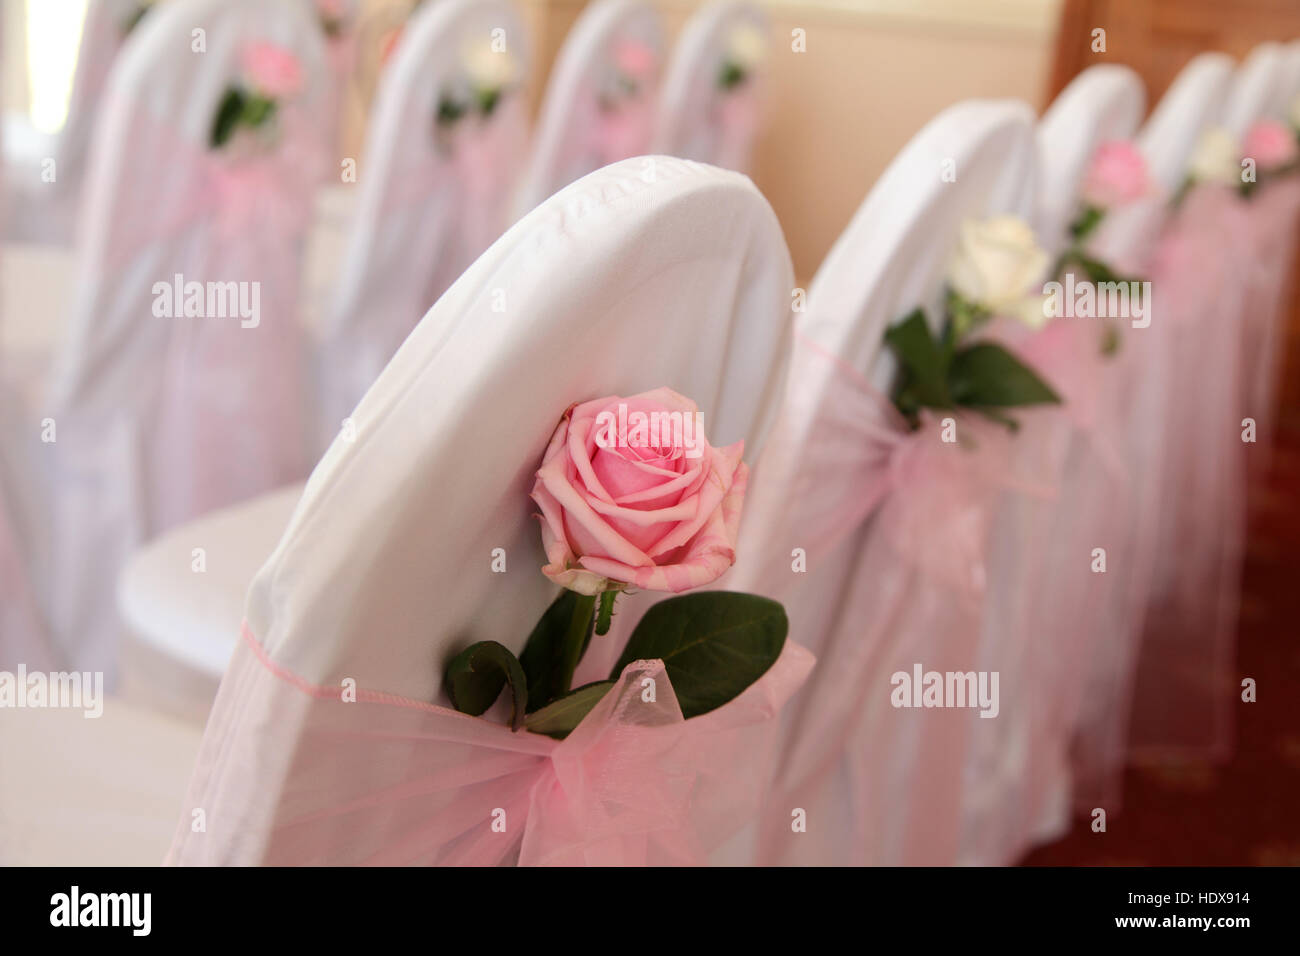 Stupendous Chairs Decorated With White Covers And Pink And White Roses Theyellowbook Wood Chair Design Ideas Theyellowbookinfo